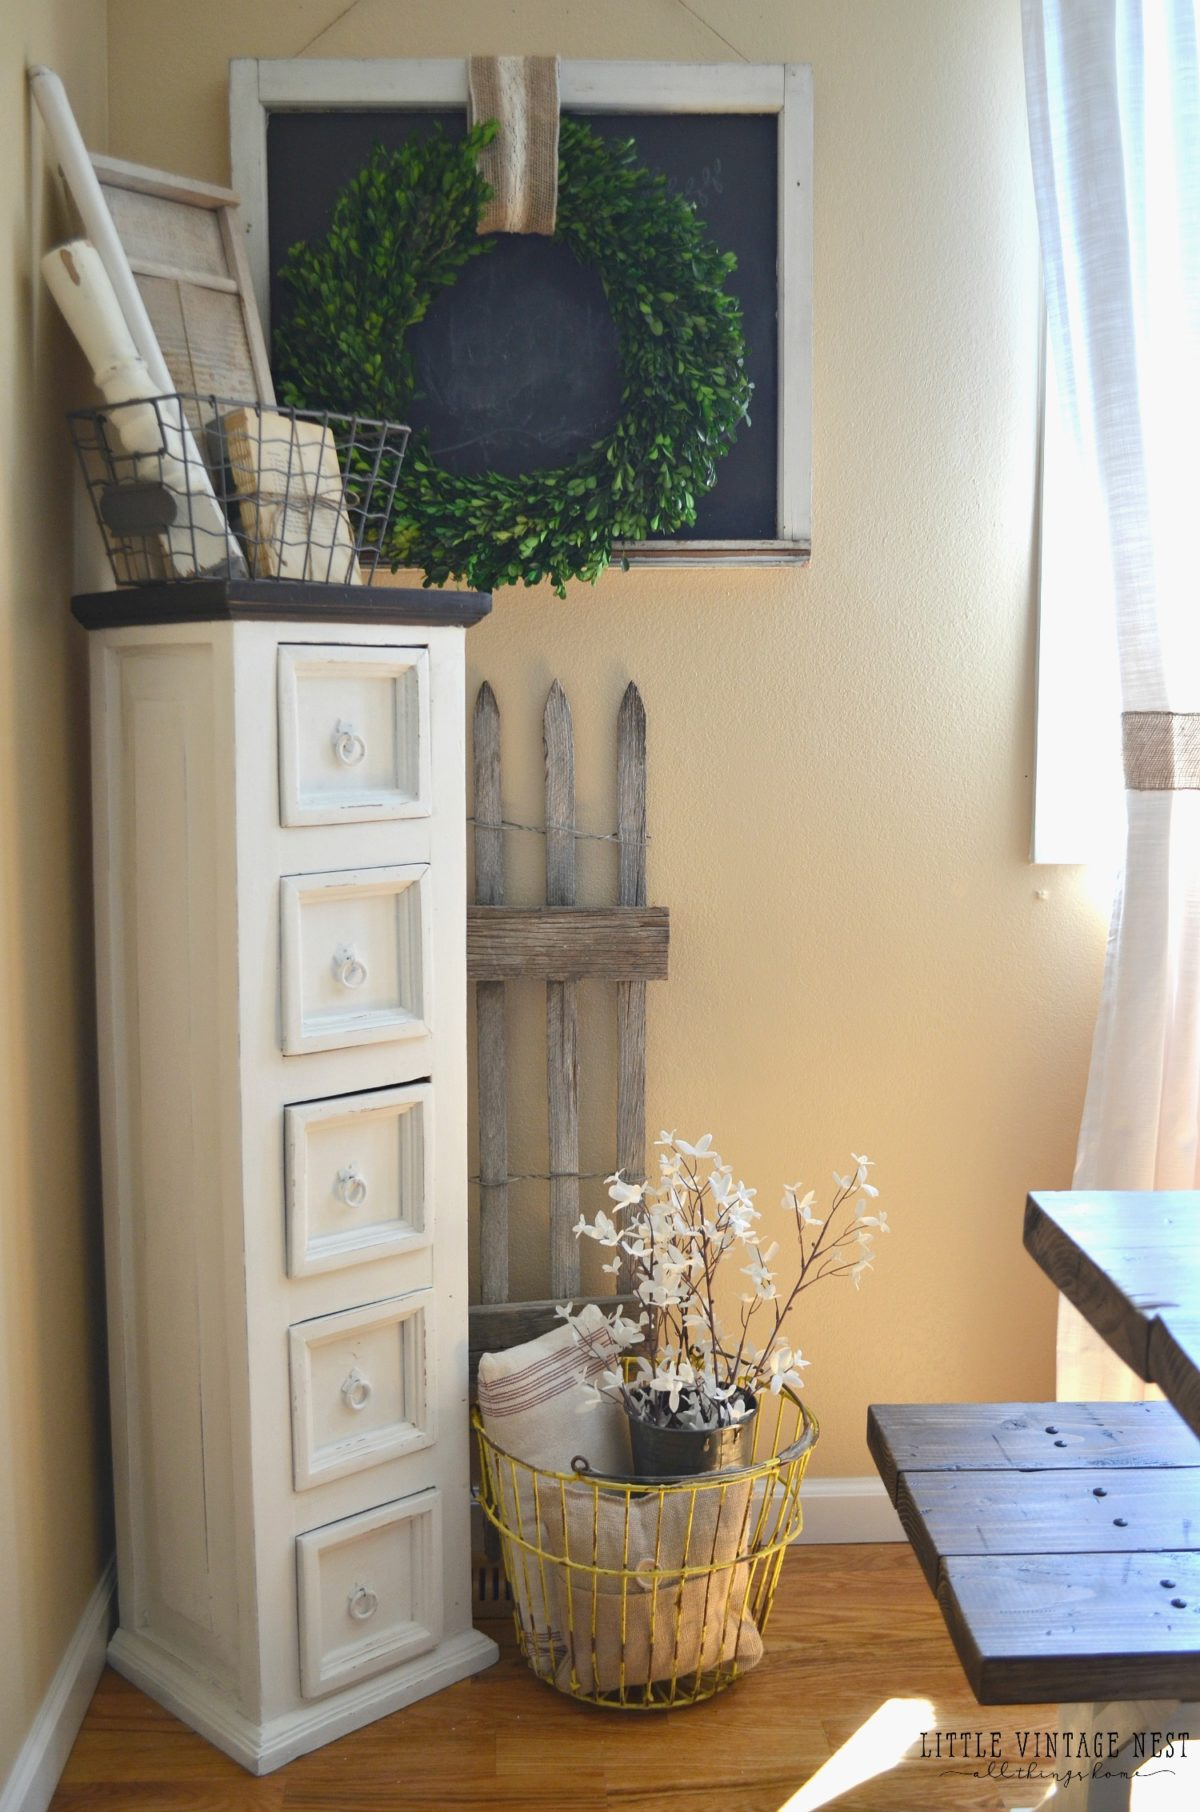 Farmhouse Decor And Dining Room Storage Cabinet ... Part 47